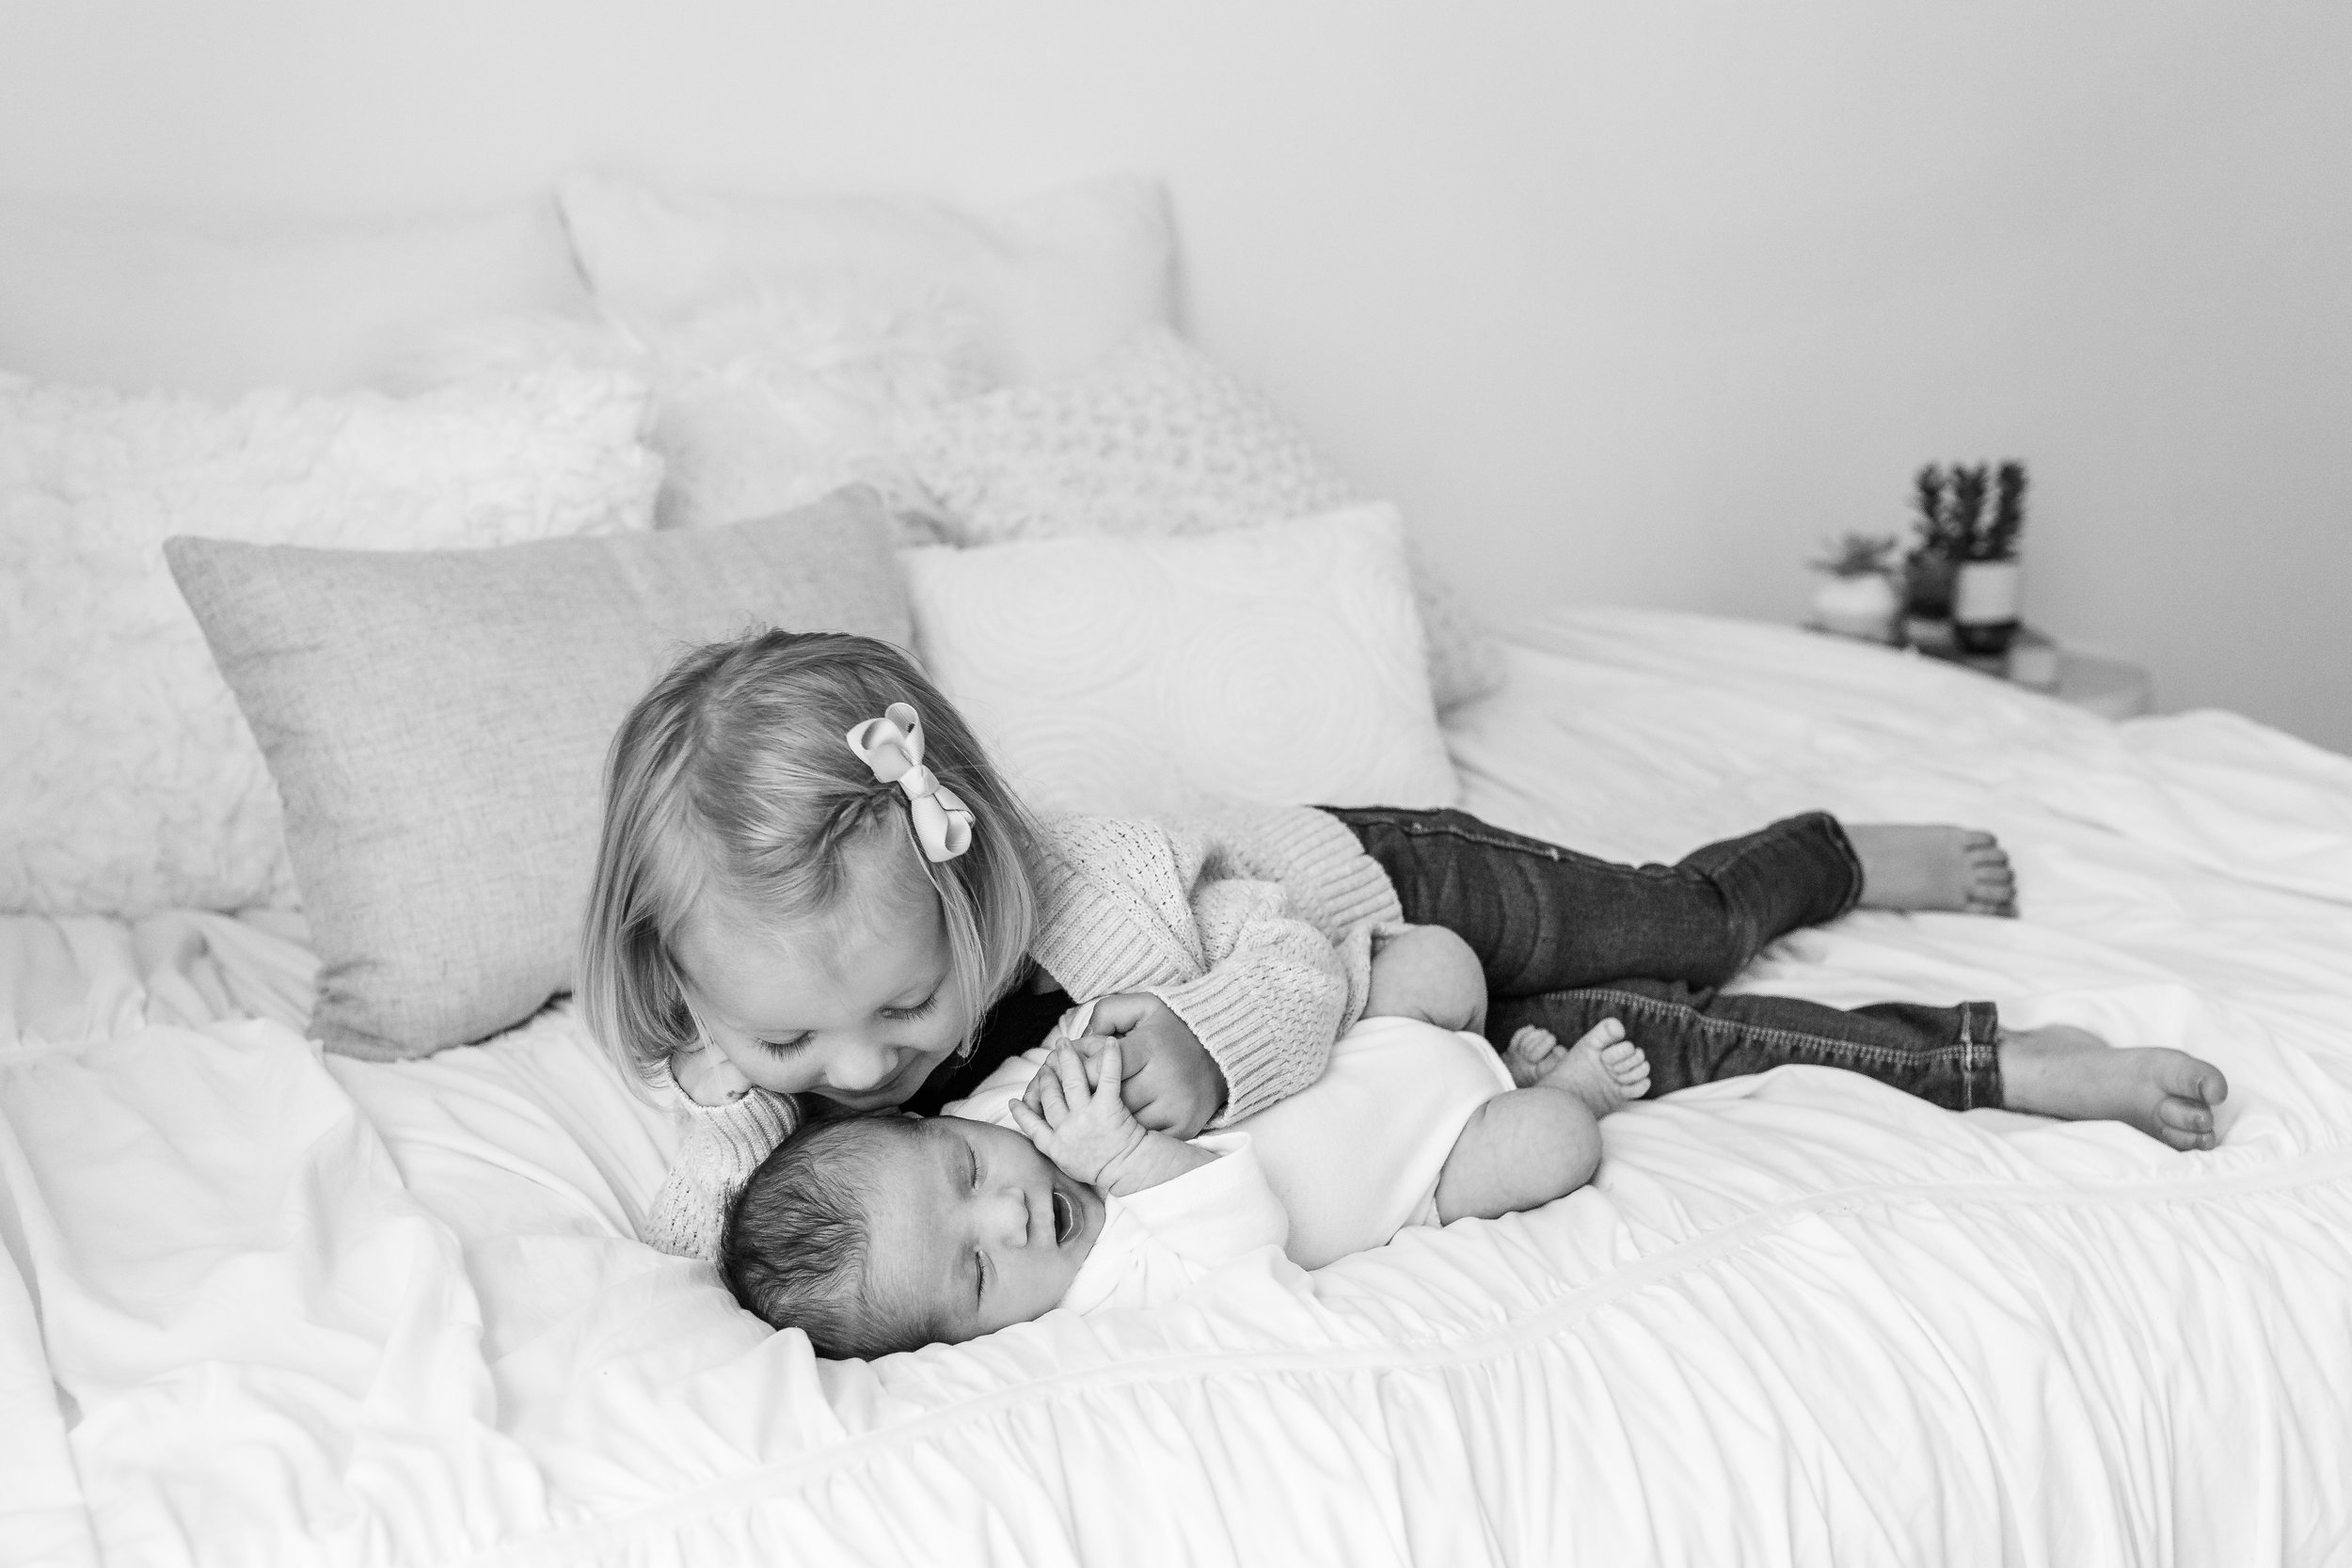 Sarah Cropper Photography is a newborn photographer who specializes in organic, connection-focused portraits of expecting mothers, newborns, babies and families in the Columbus, Ohio area. Sarah focuses on natural colors and real emotions to capture timeless photos that last a lifetime   .